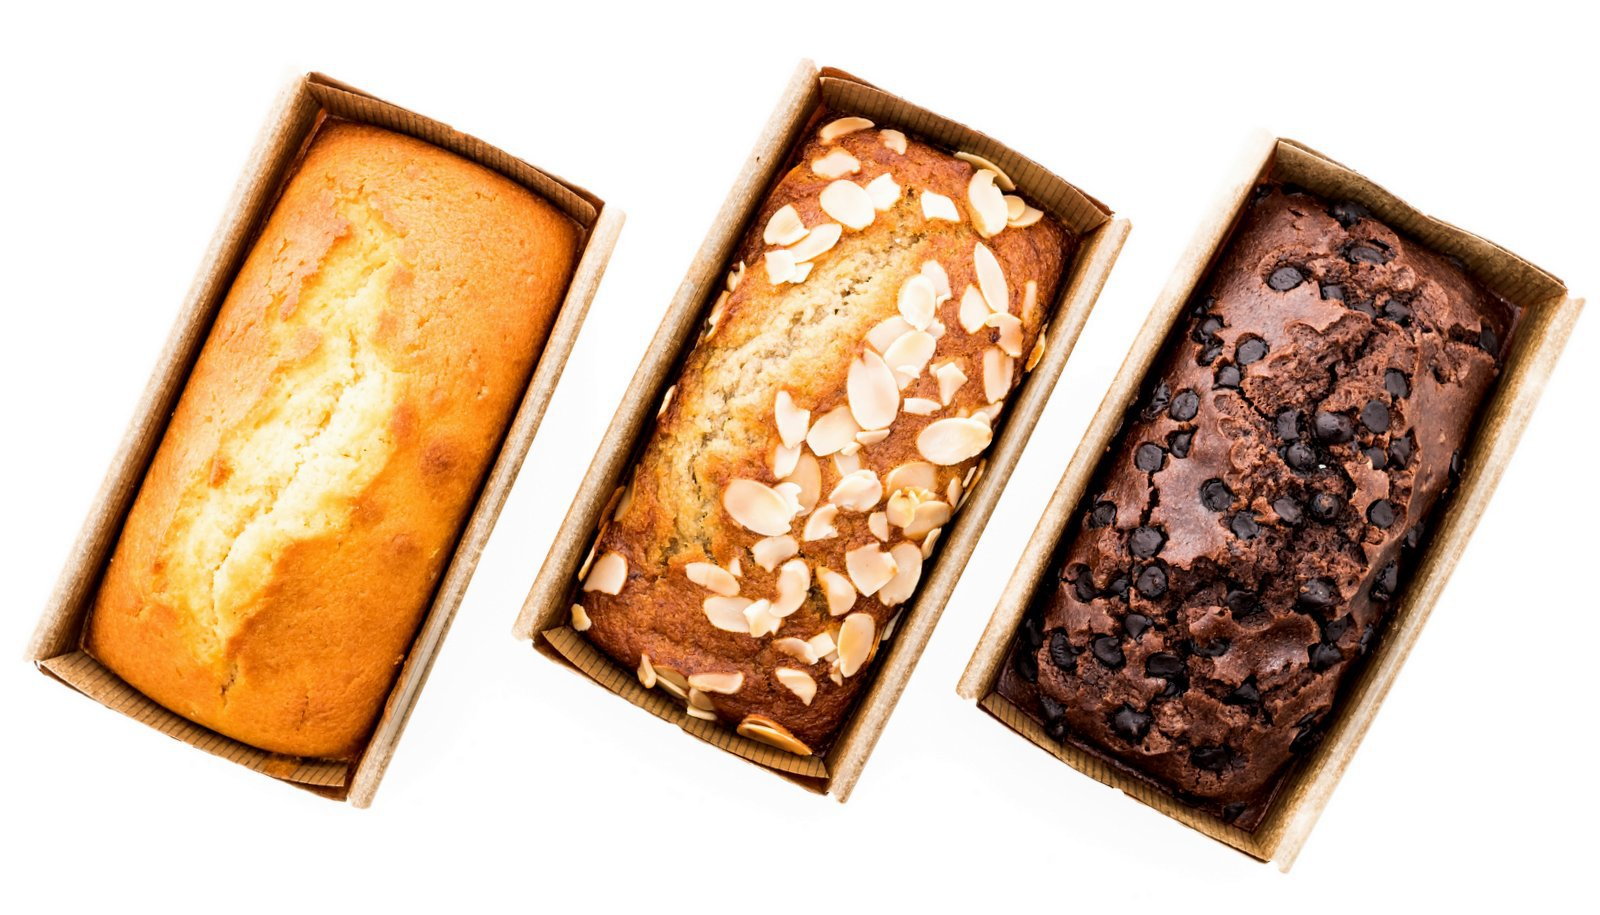 Store-bought frozen packaged pound cakes